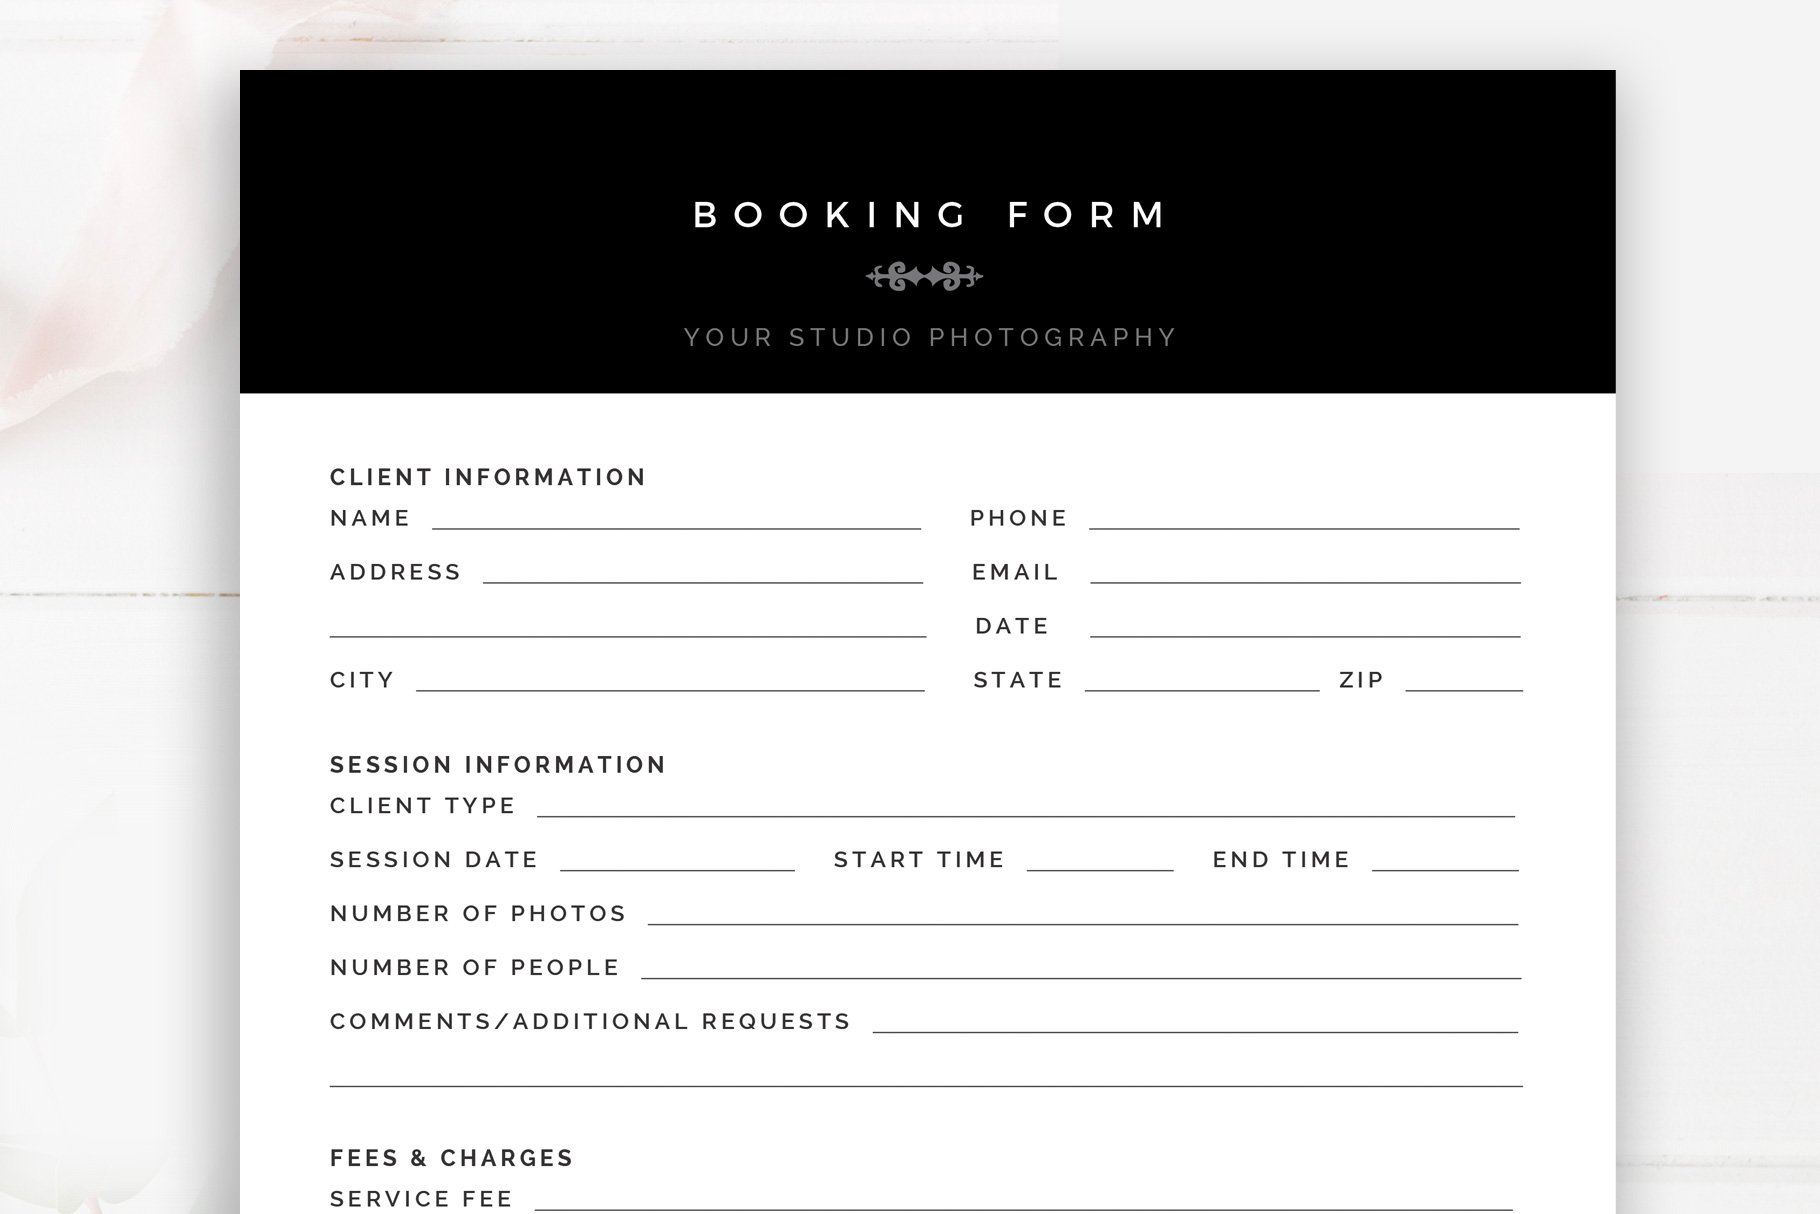 Customer Form Template Word from images.creativemarket.com